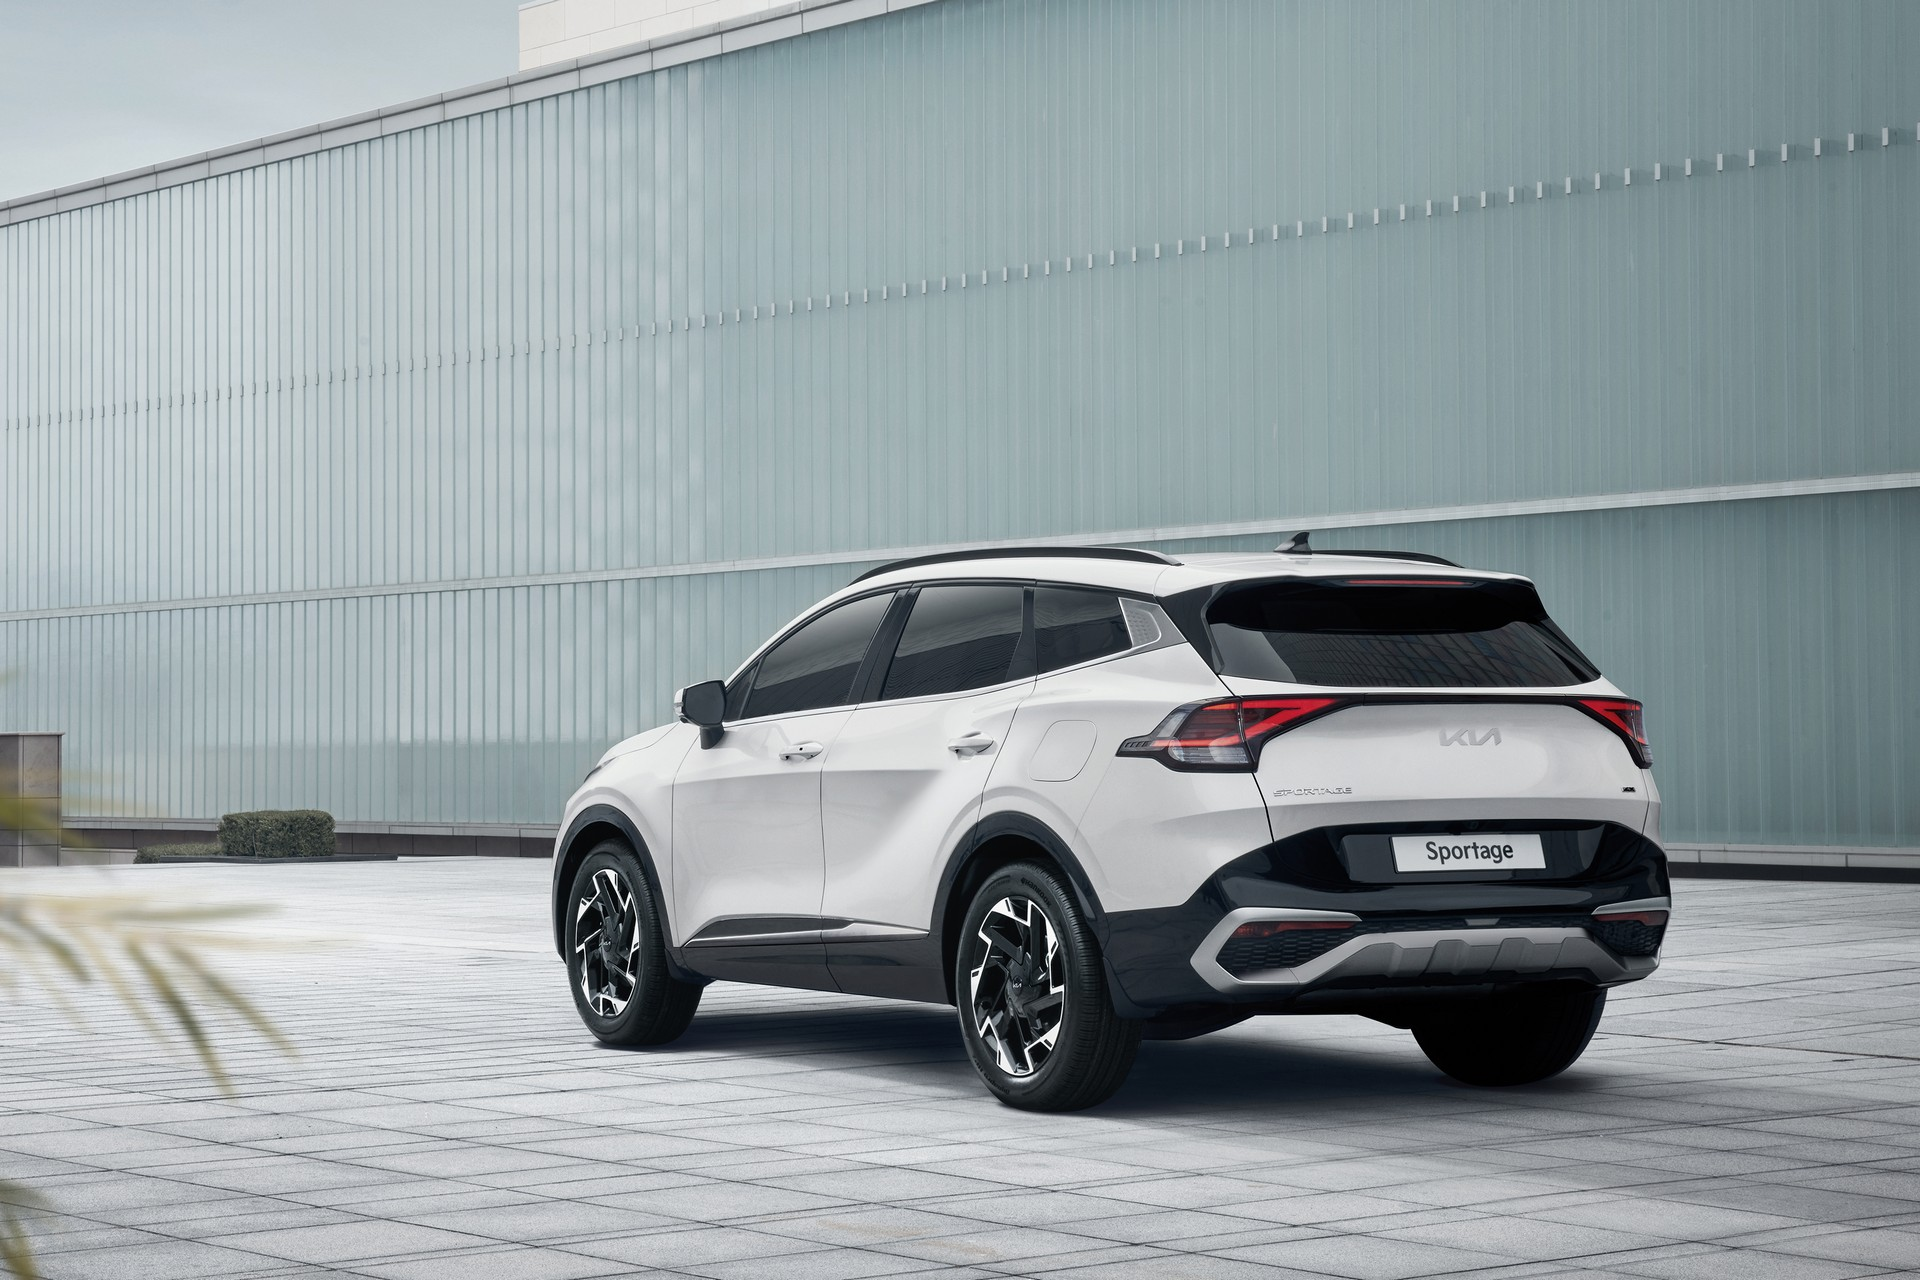 2023 Kia Sportage Debuts With Bold New Styling Vastly Improved Interior Carscoops